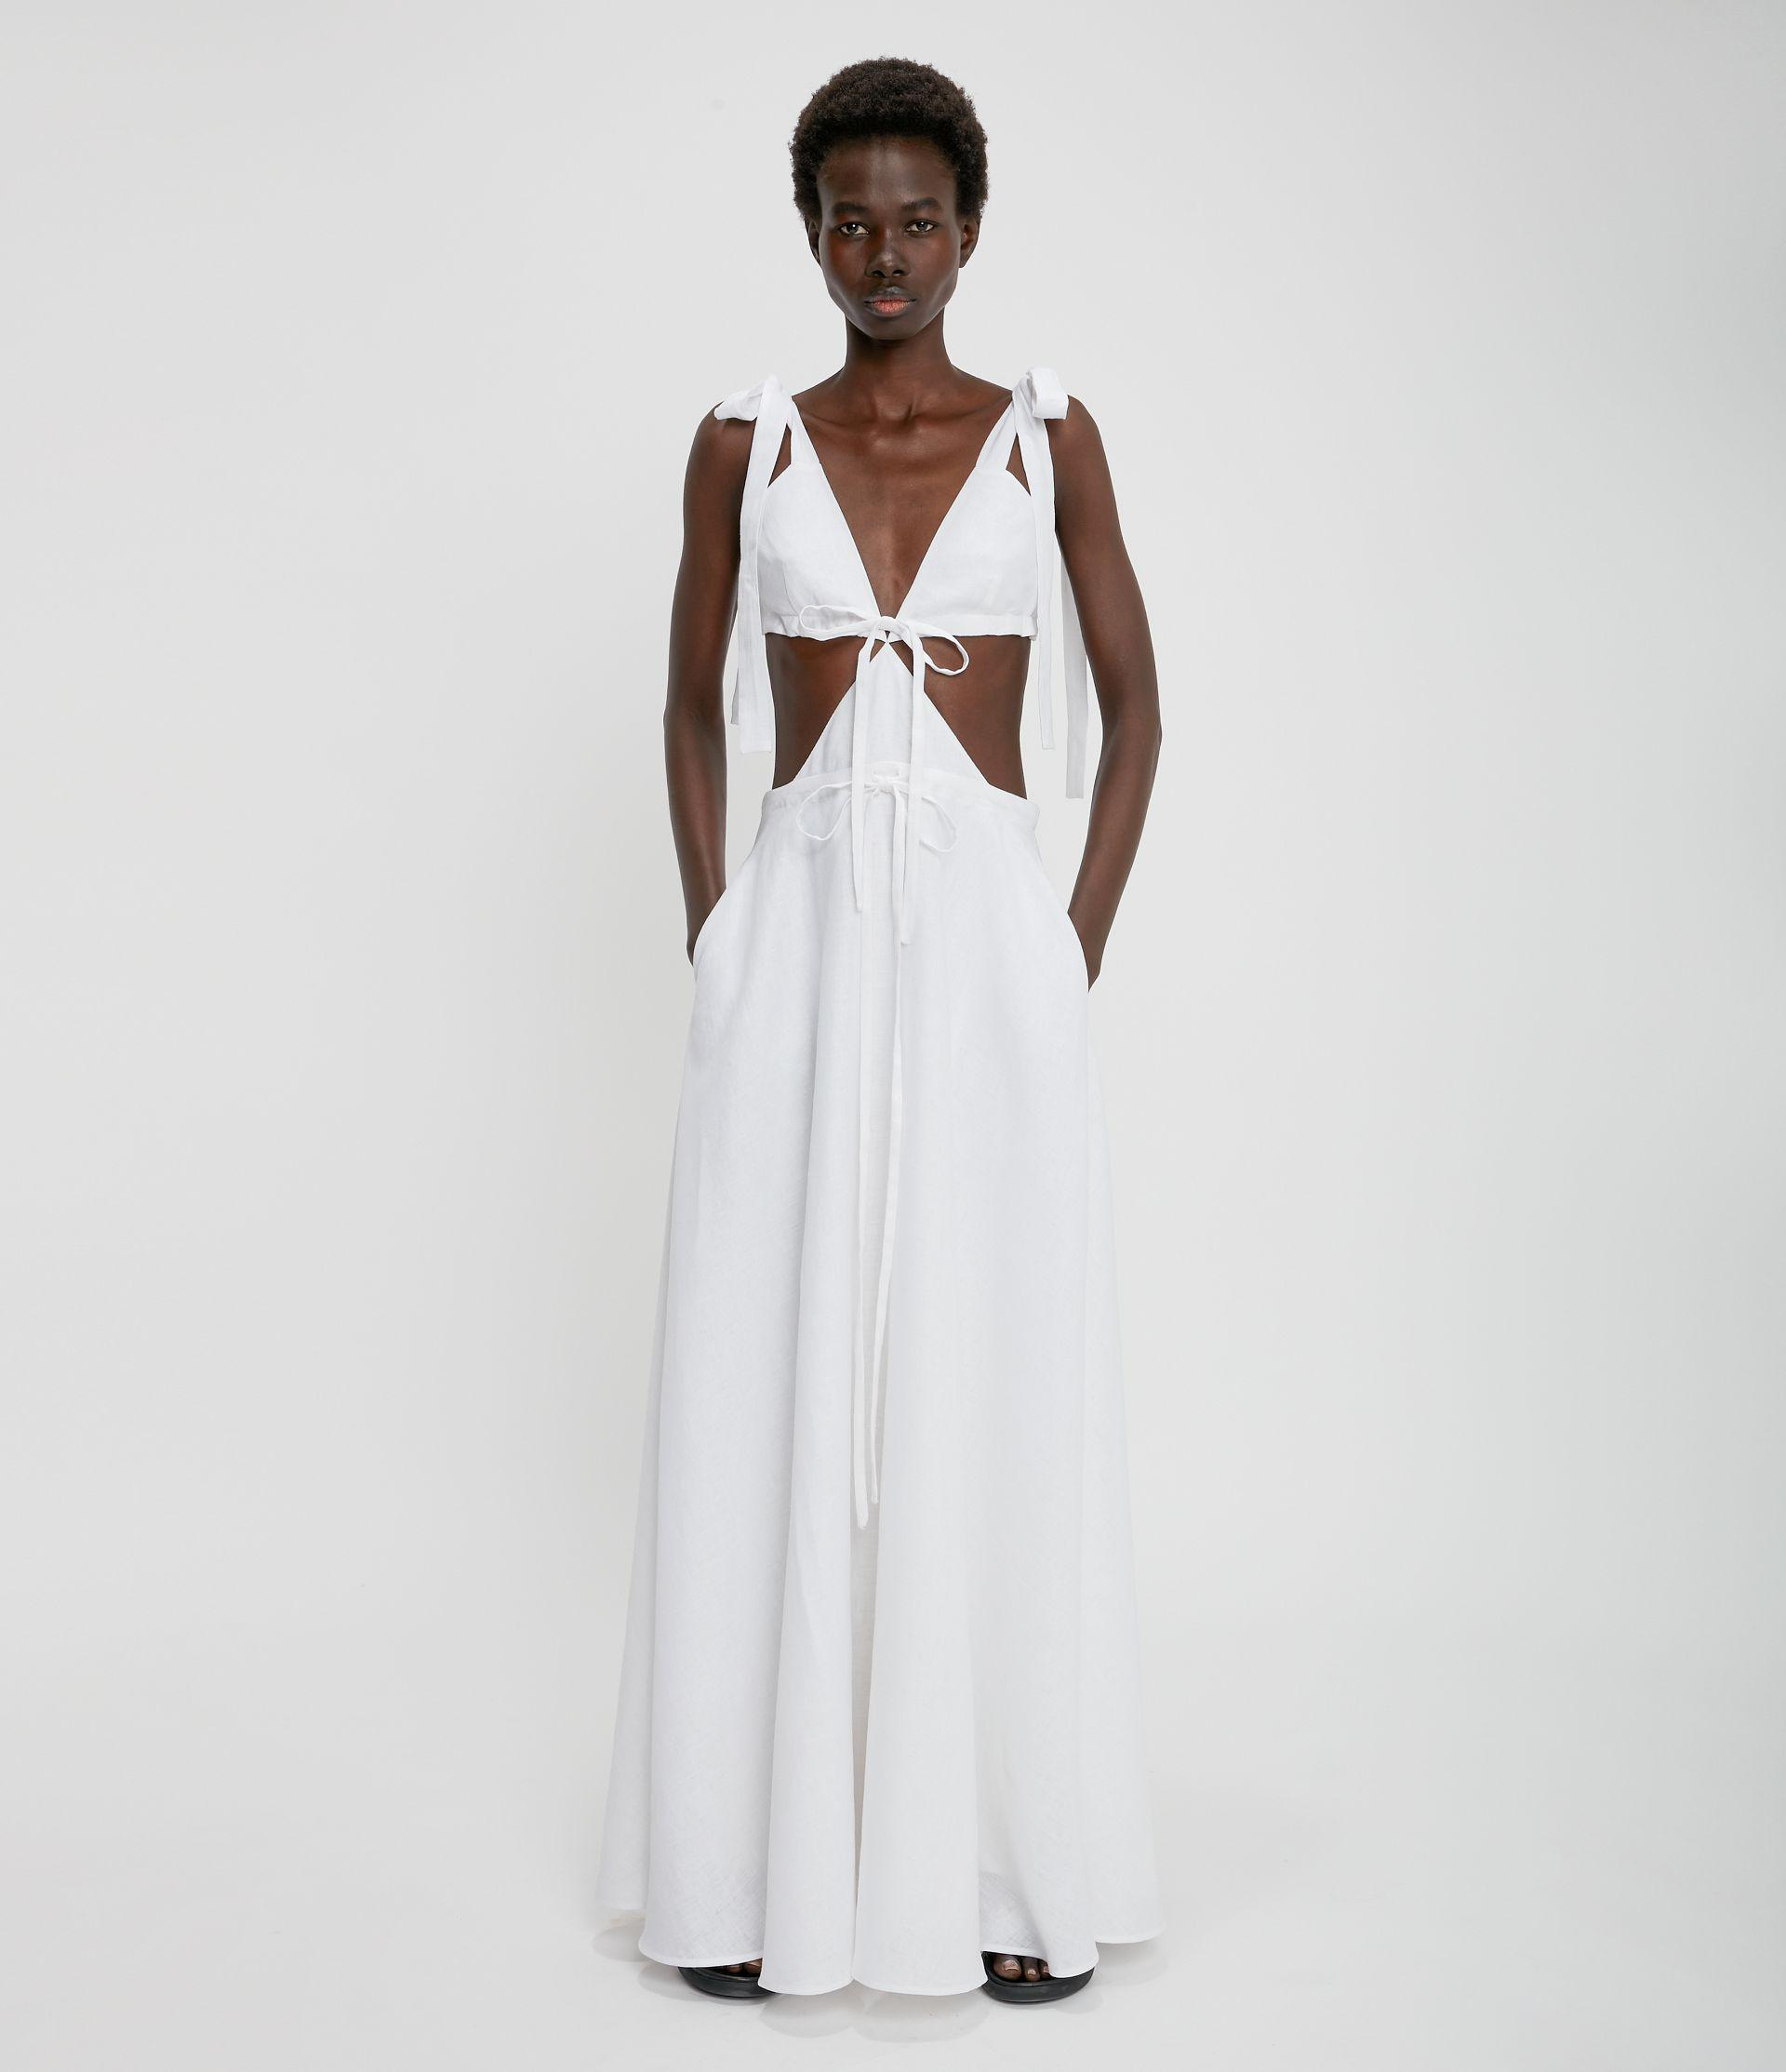 Christopher Kane Bridal: Cut-Out Linen Gown